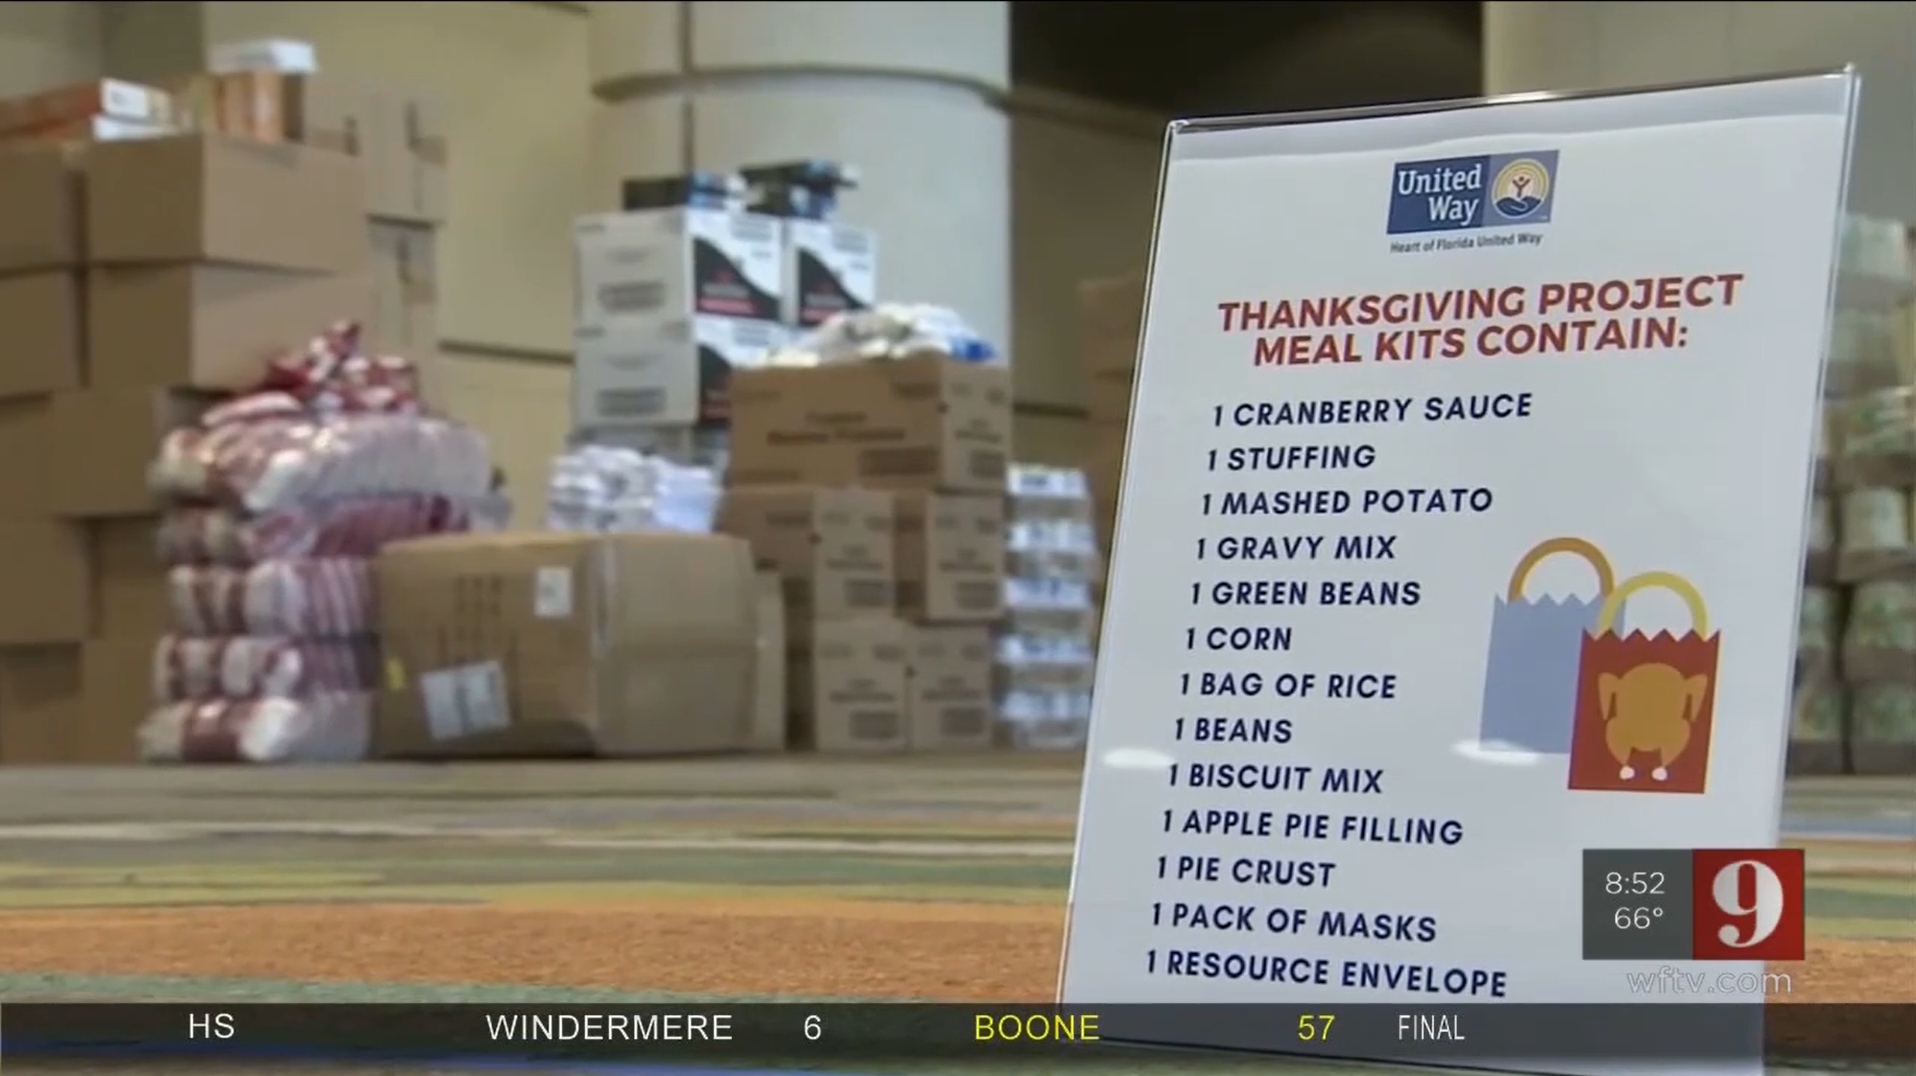 WFTV | United Way Thanksgiving Project